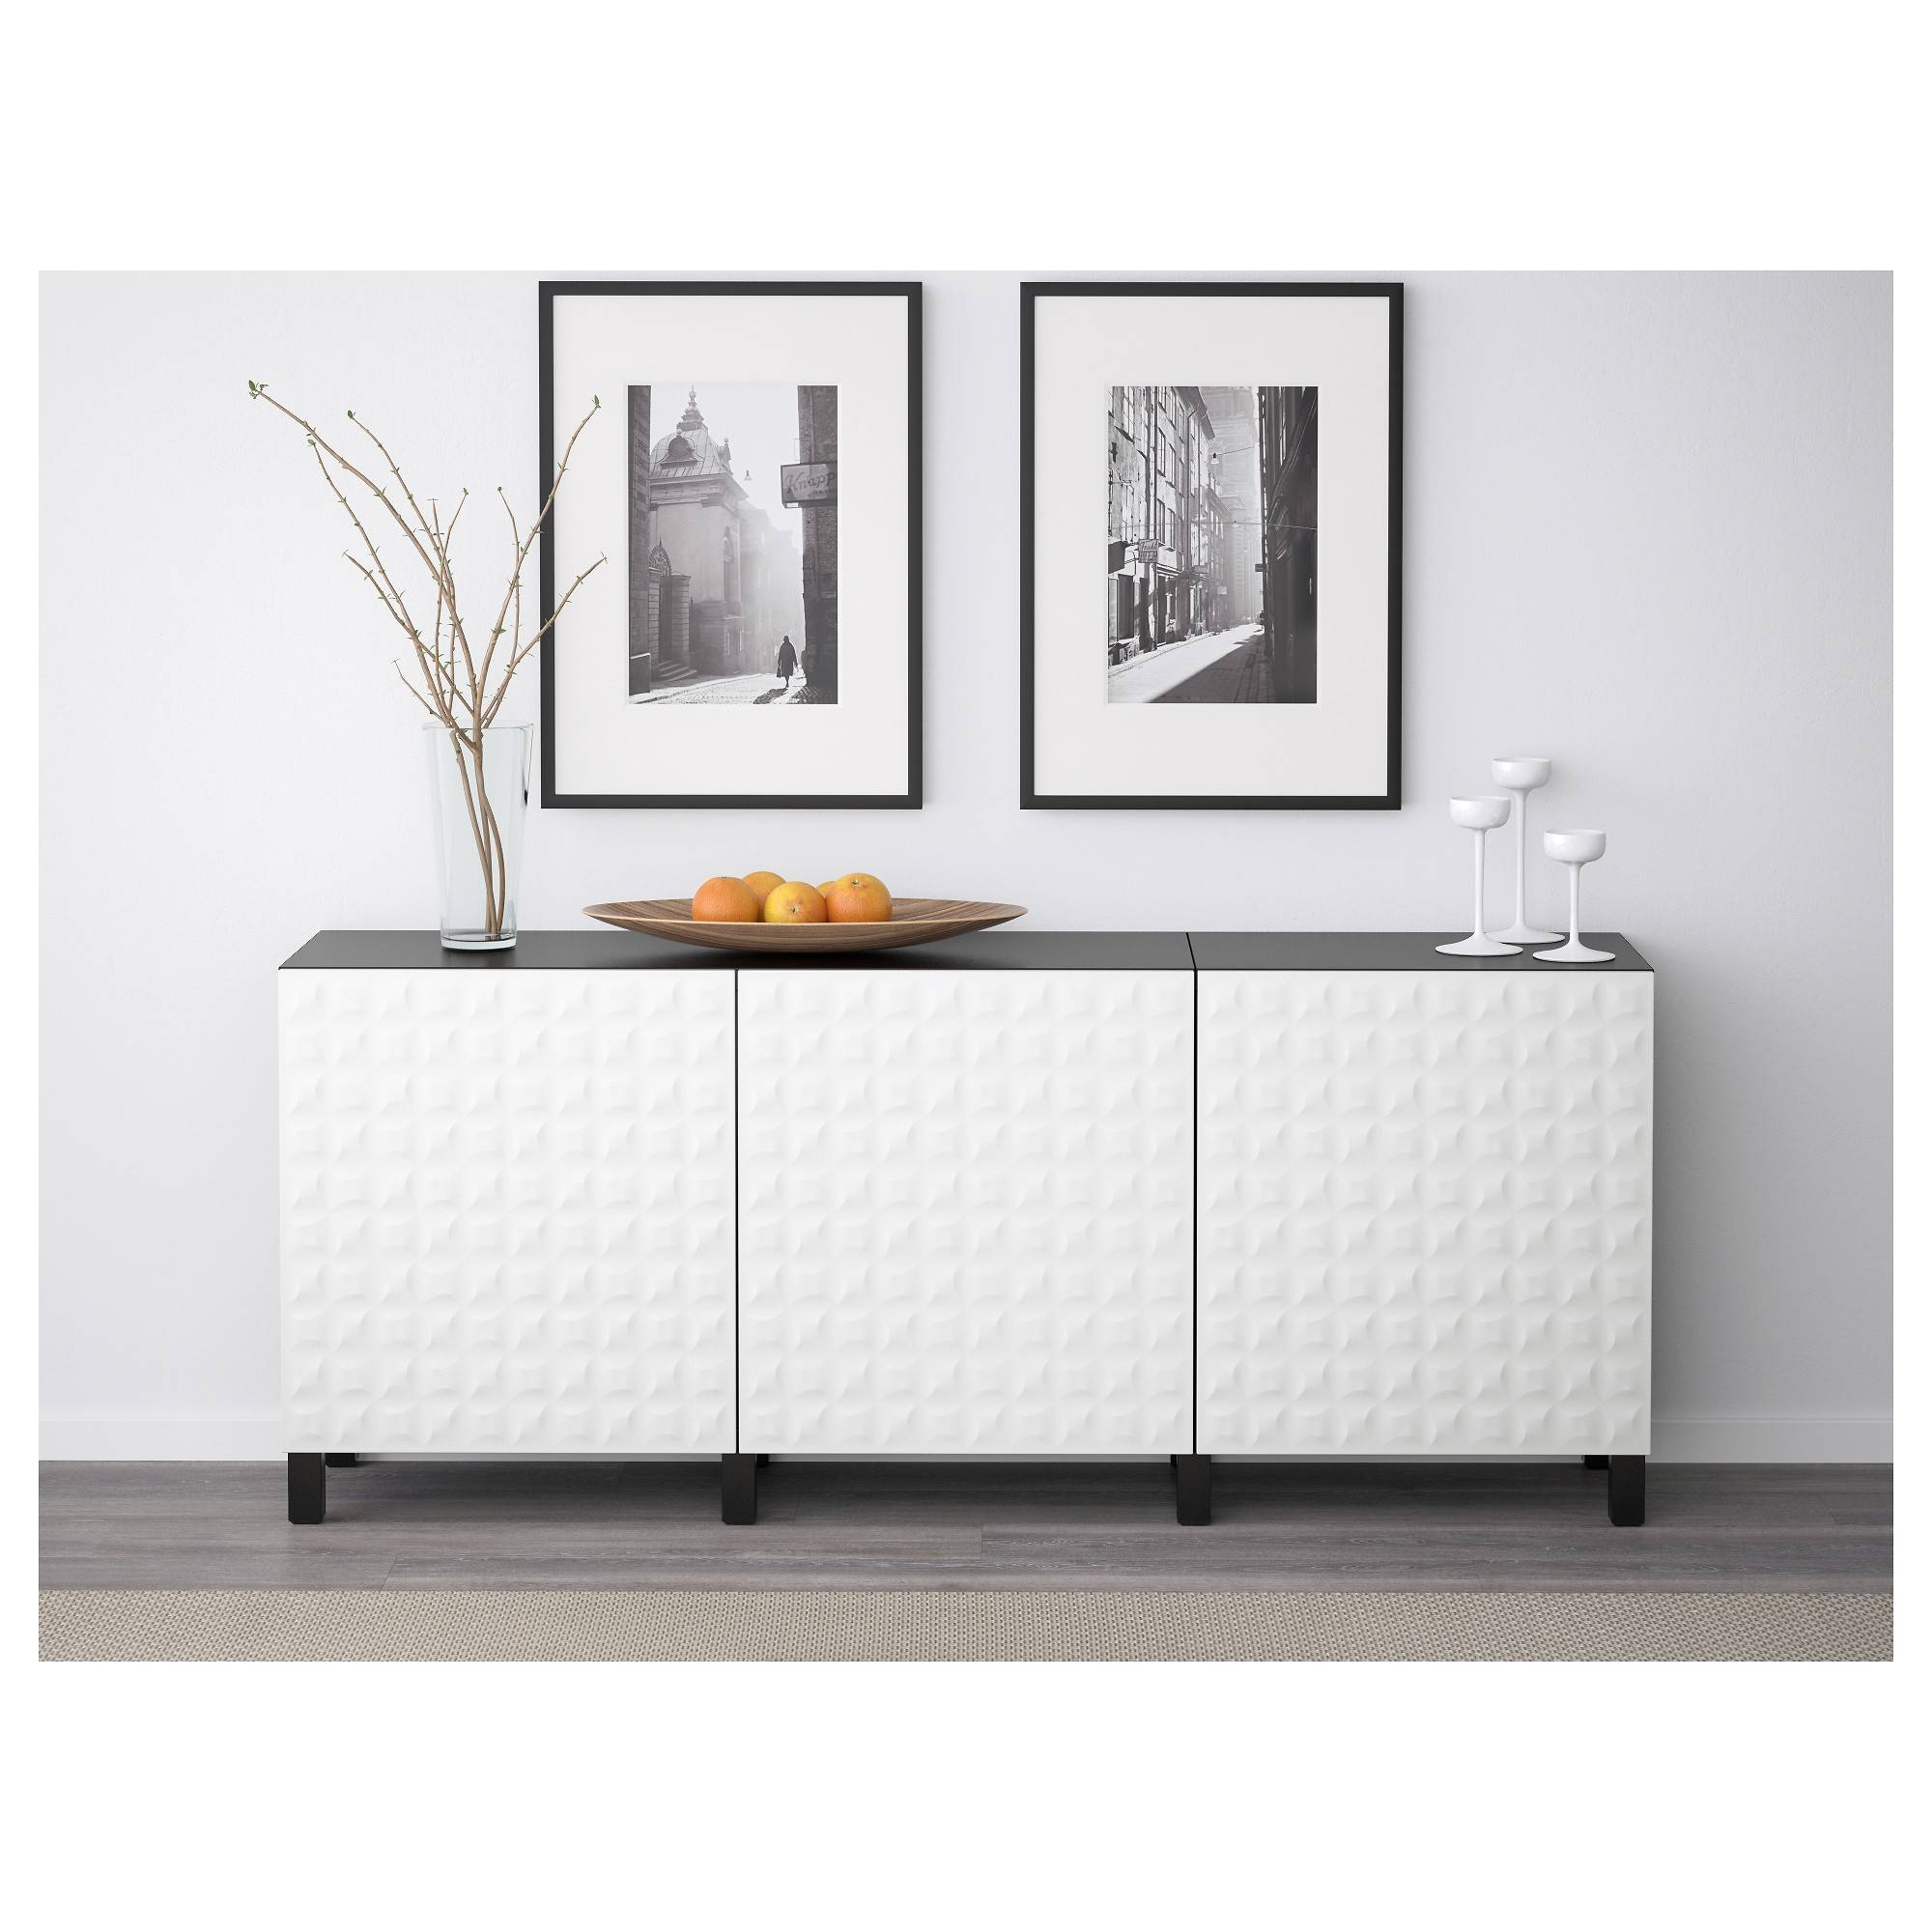 Bestå Storage Combination With Doors – White/selsviken High Gloss Pertaining To Ikea Besta Sideboards (View 5 of 15)